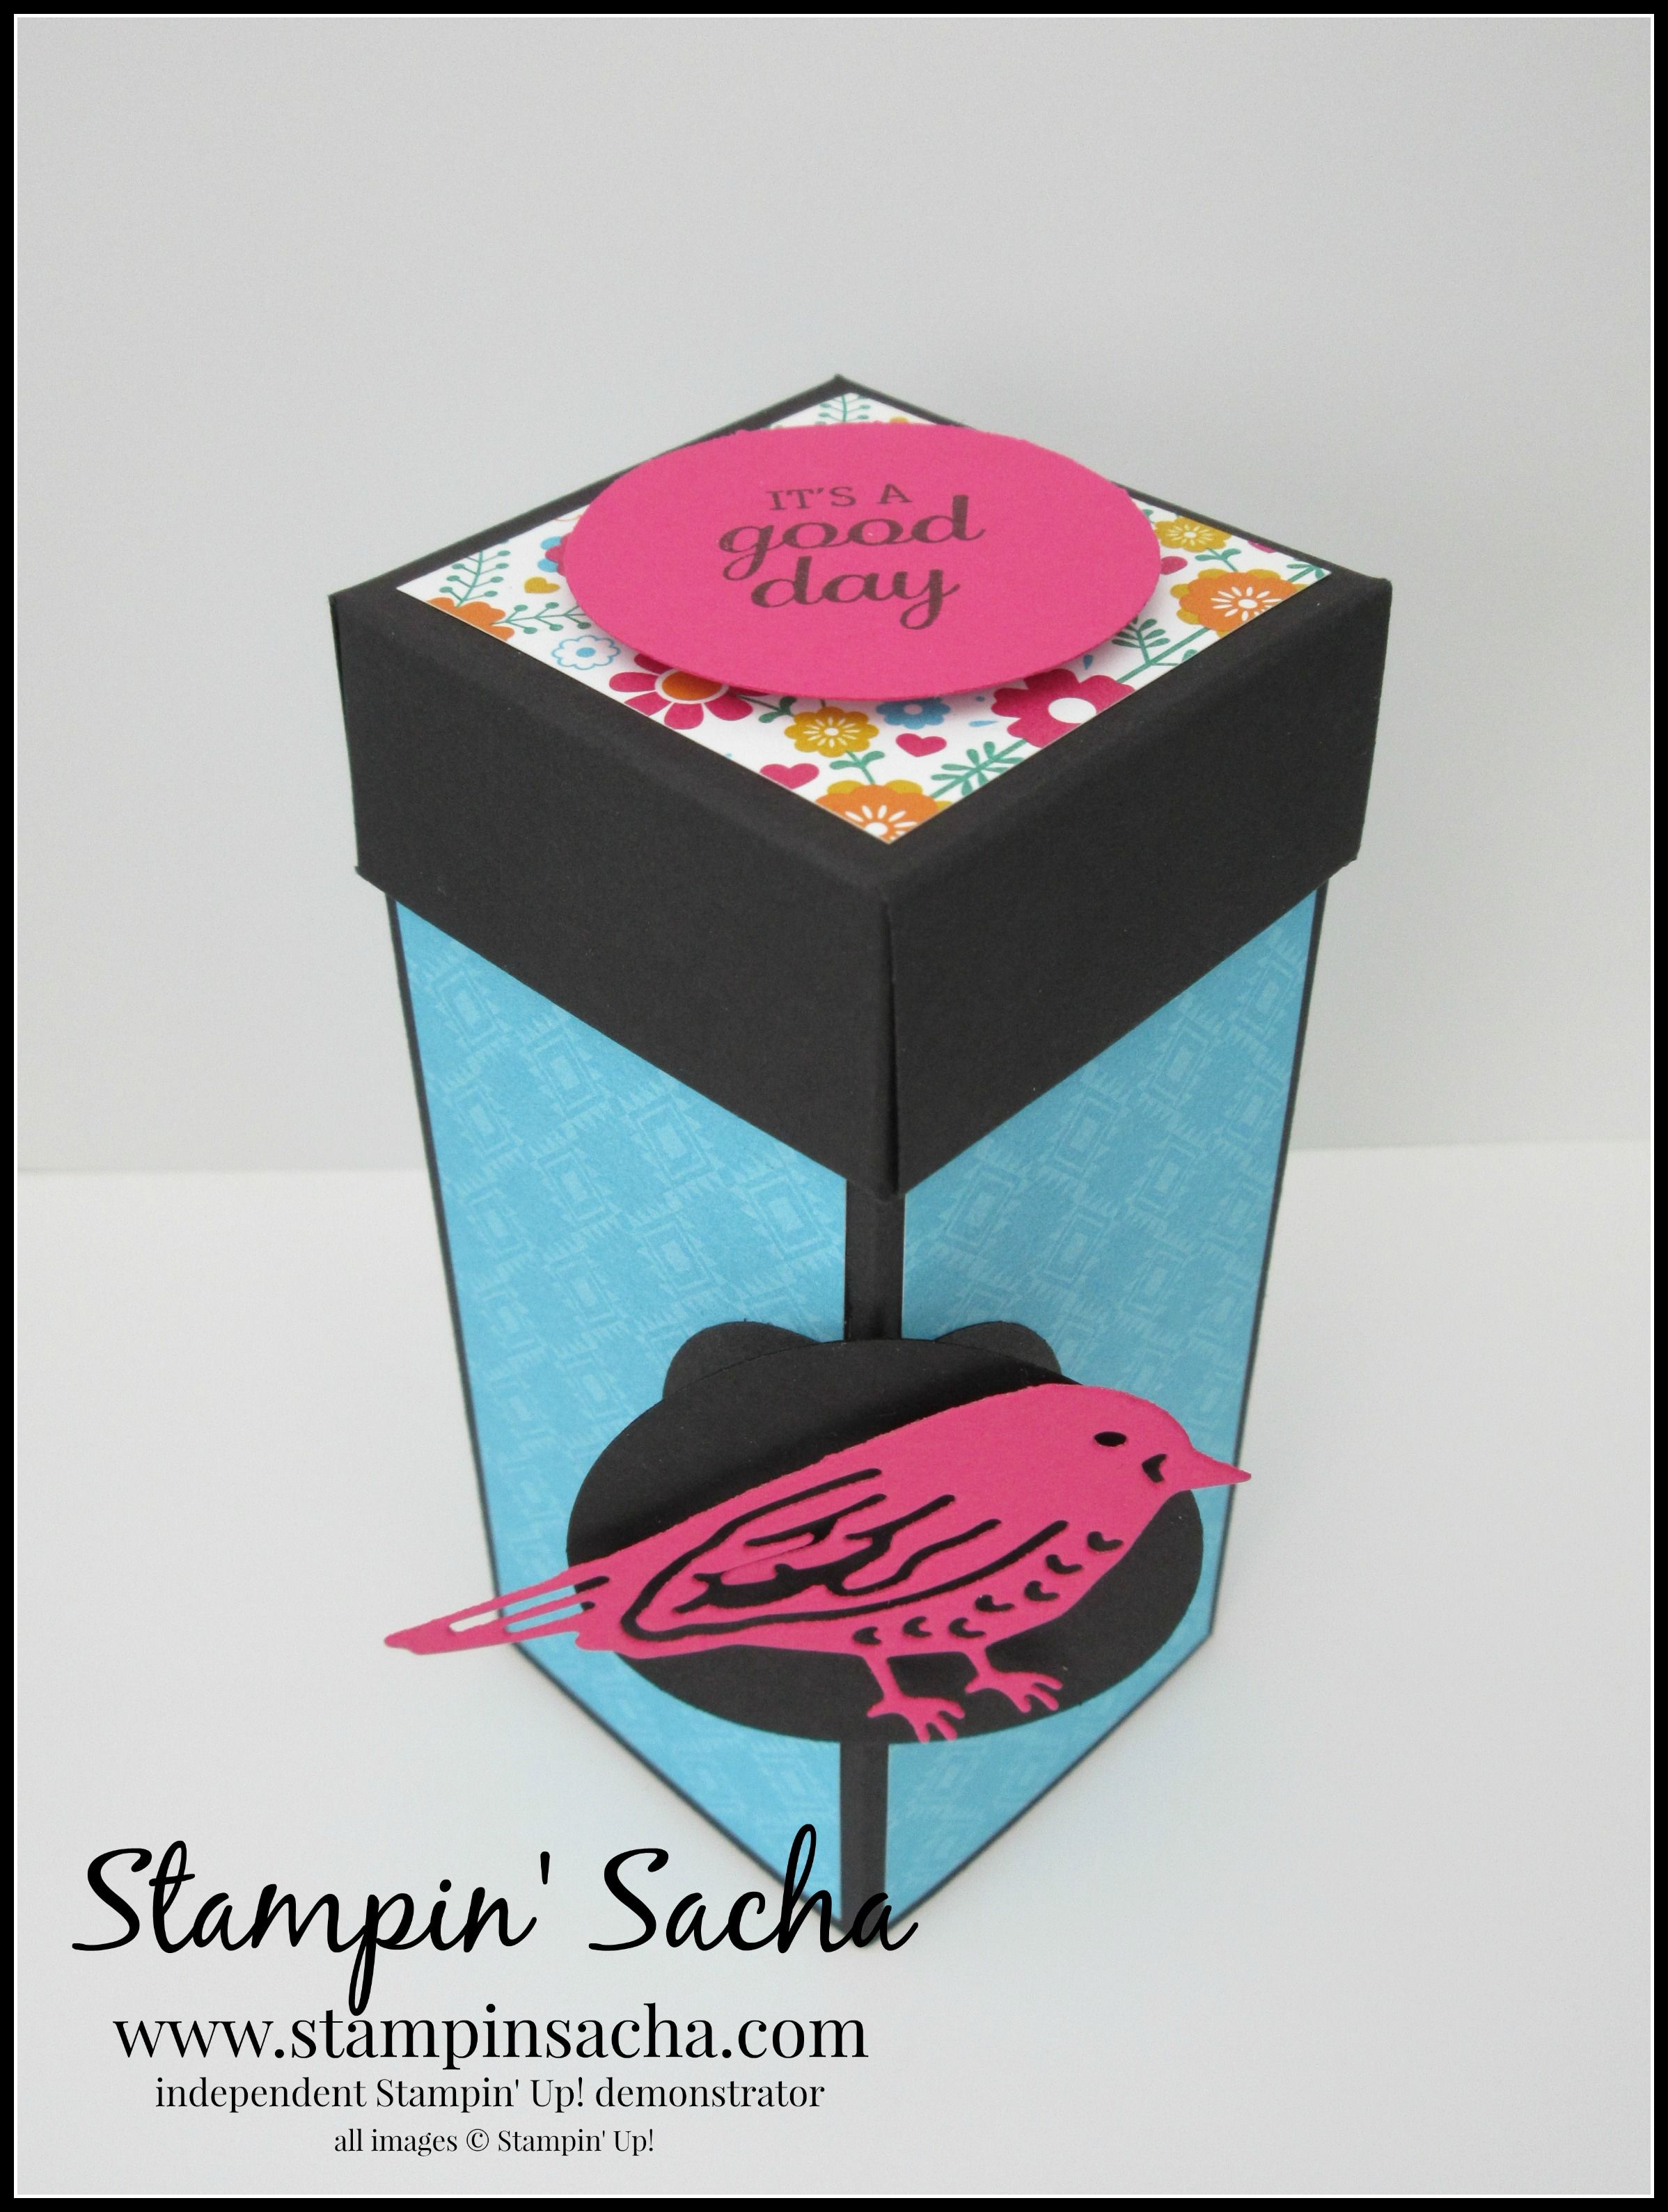 Stampin' Sacha - Stampin' Up! - Annual Catalogue 2016-2017 - Best Birds - Festive Birthday DSP - Basic Black - Tempting Turquoise - Melon Mambo - Stepper Box (without Origami) - #stampin_sacha - #stampinup